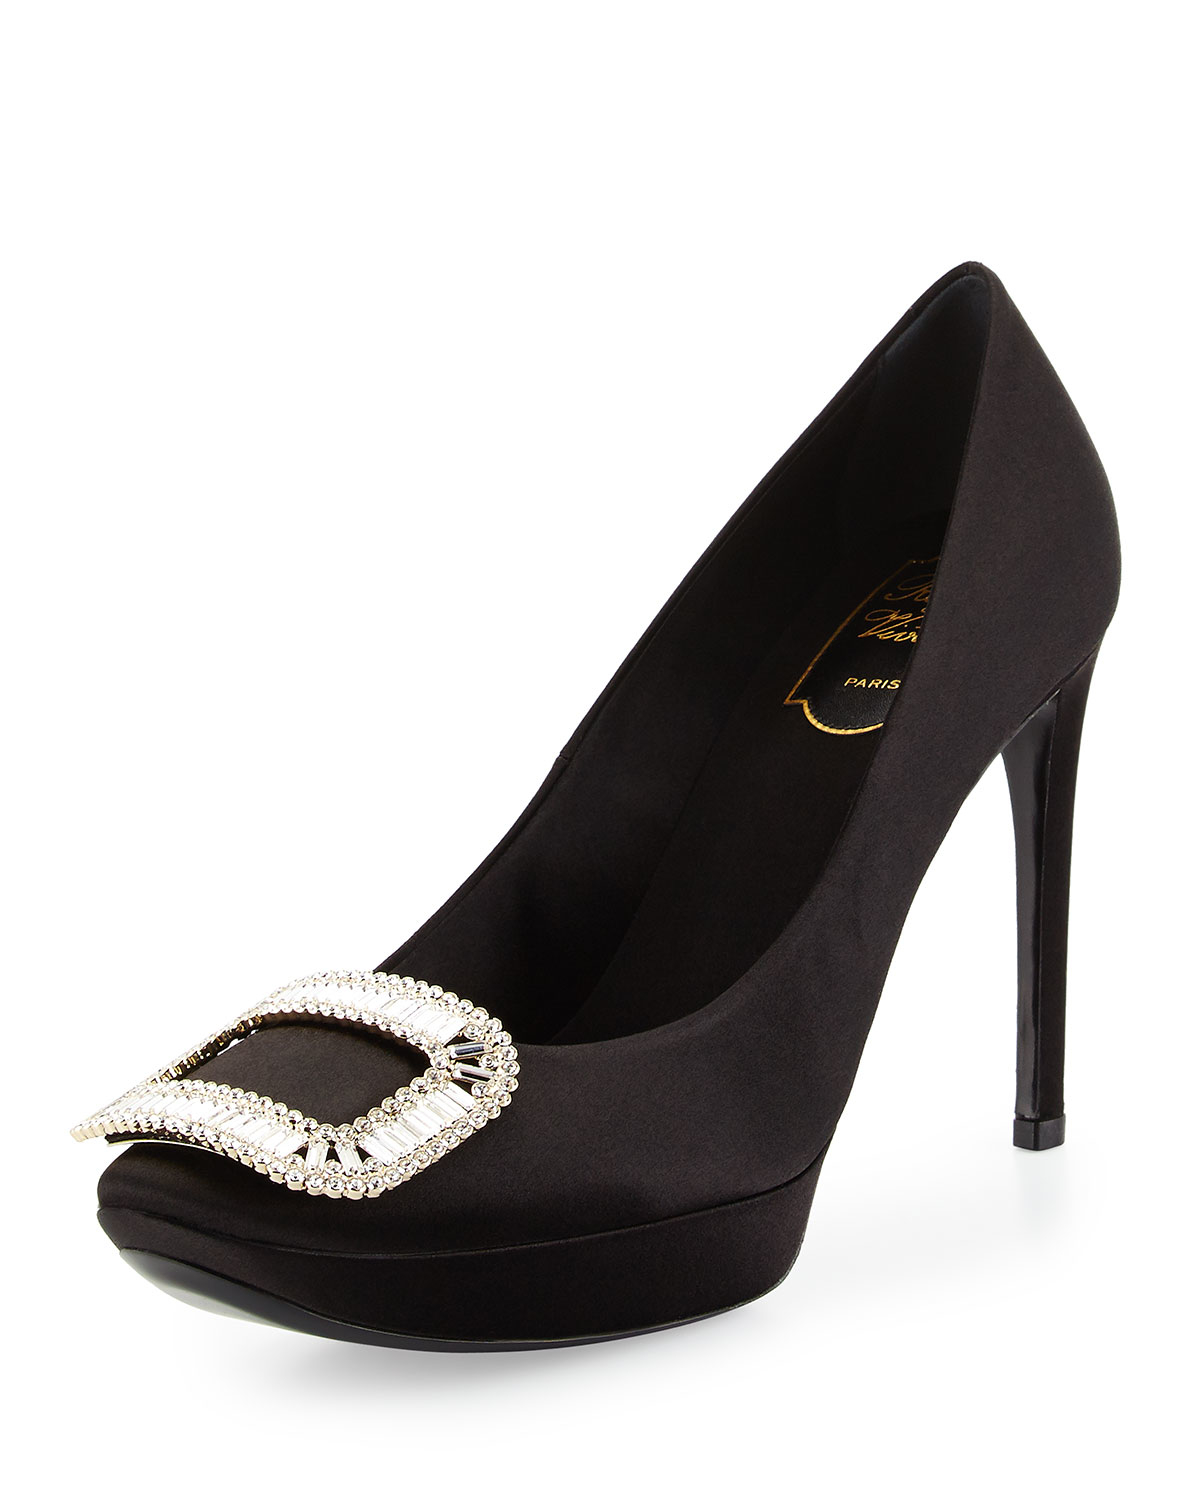 85a2db428ad3 Lyst - Roger Vivier Limelight Satin Crystal-Buckle Pump in Black